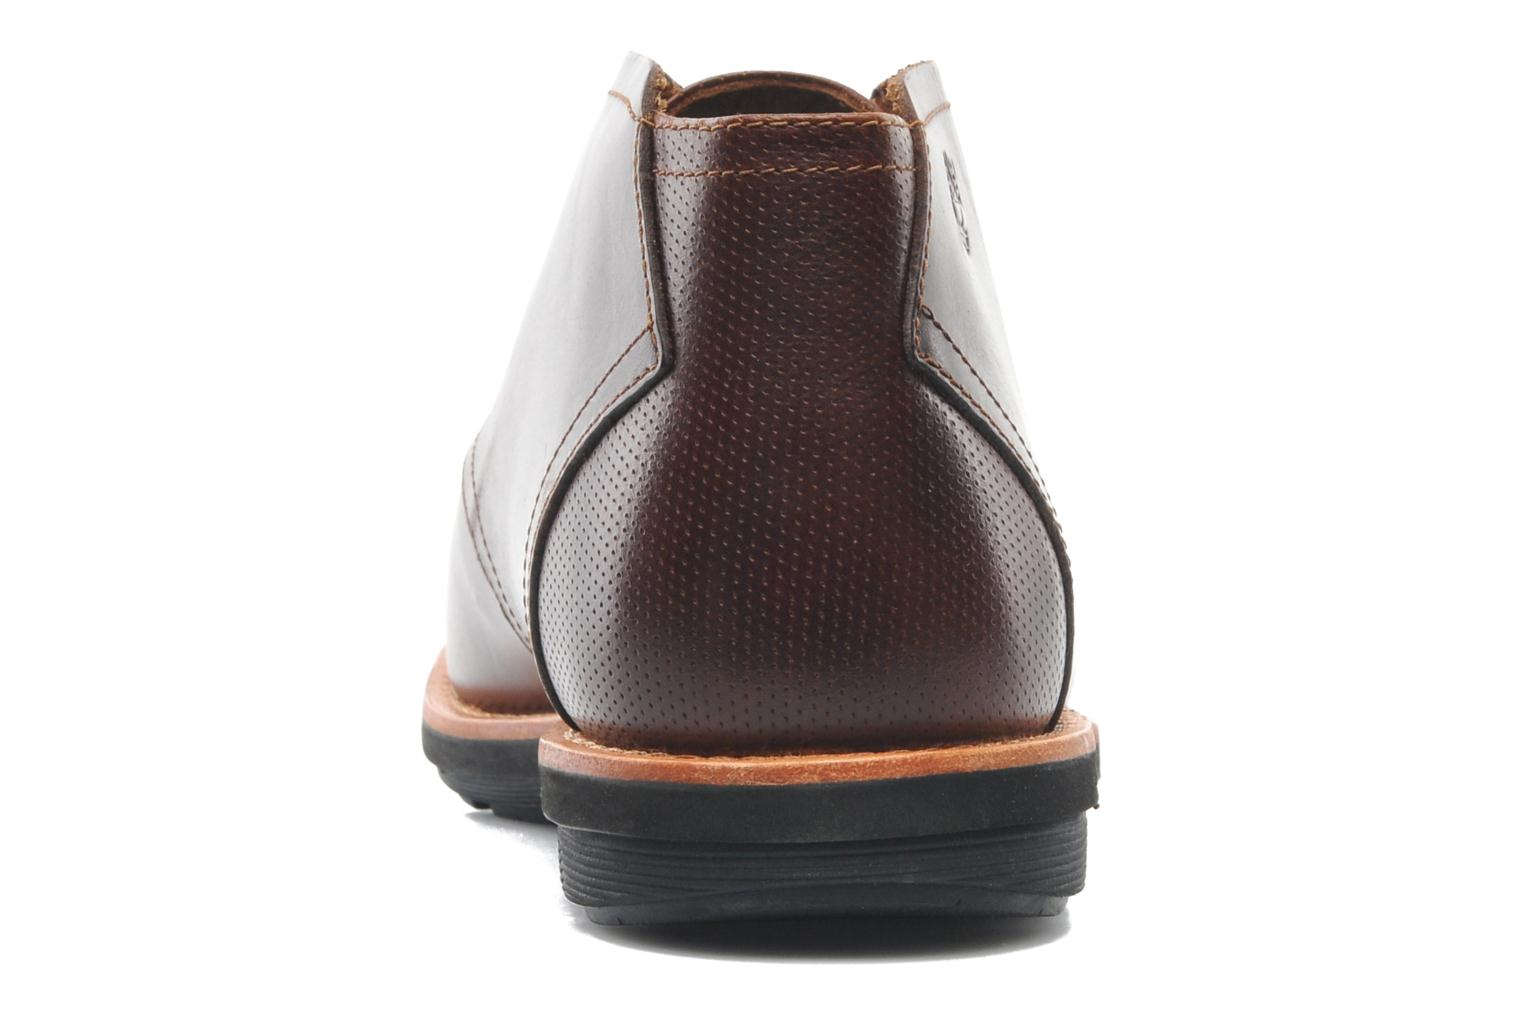 Earthkeepers Kempton Chukka Brown Full-Grain